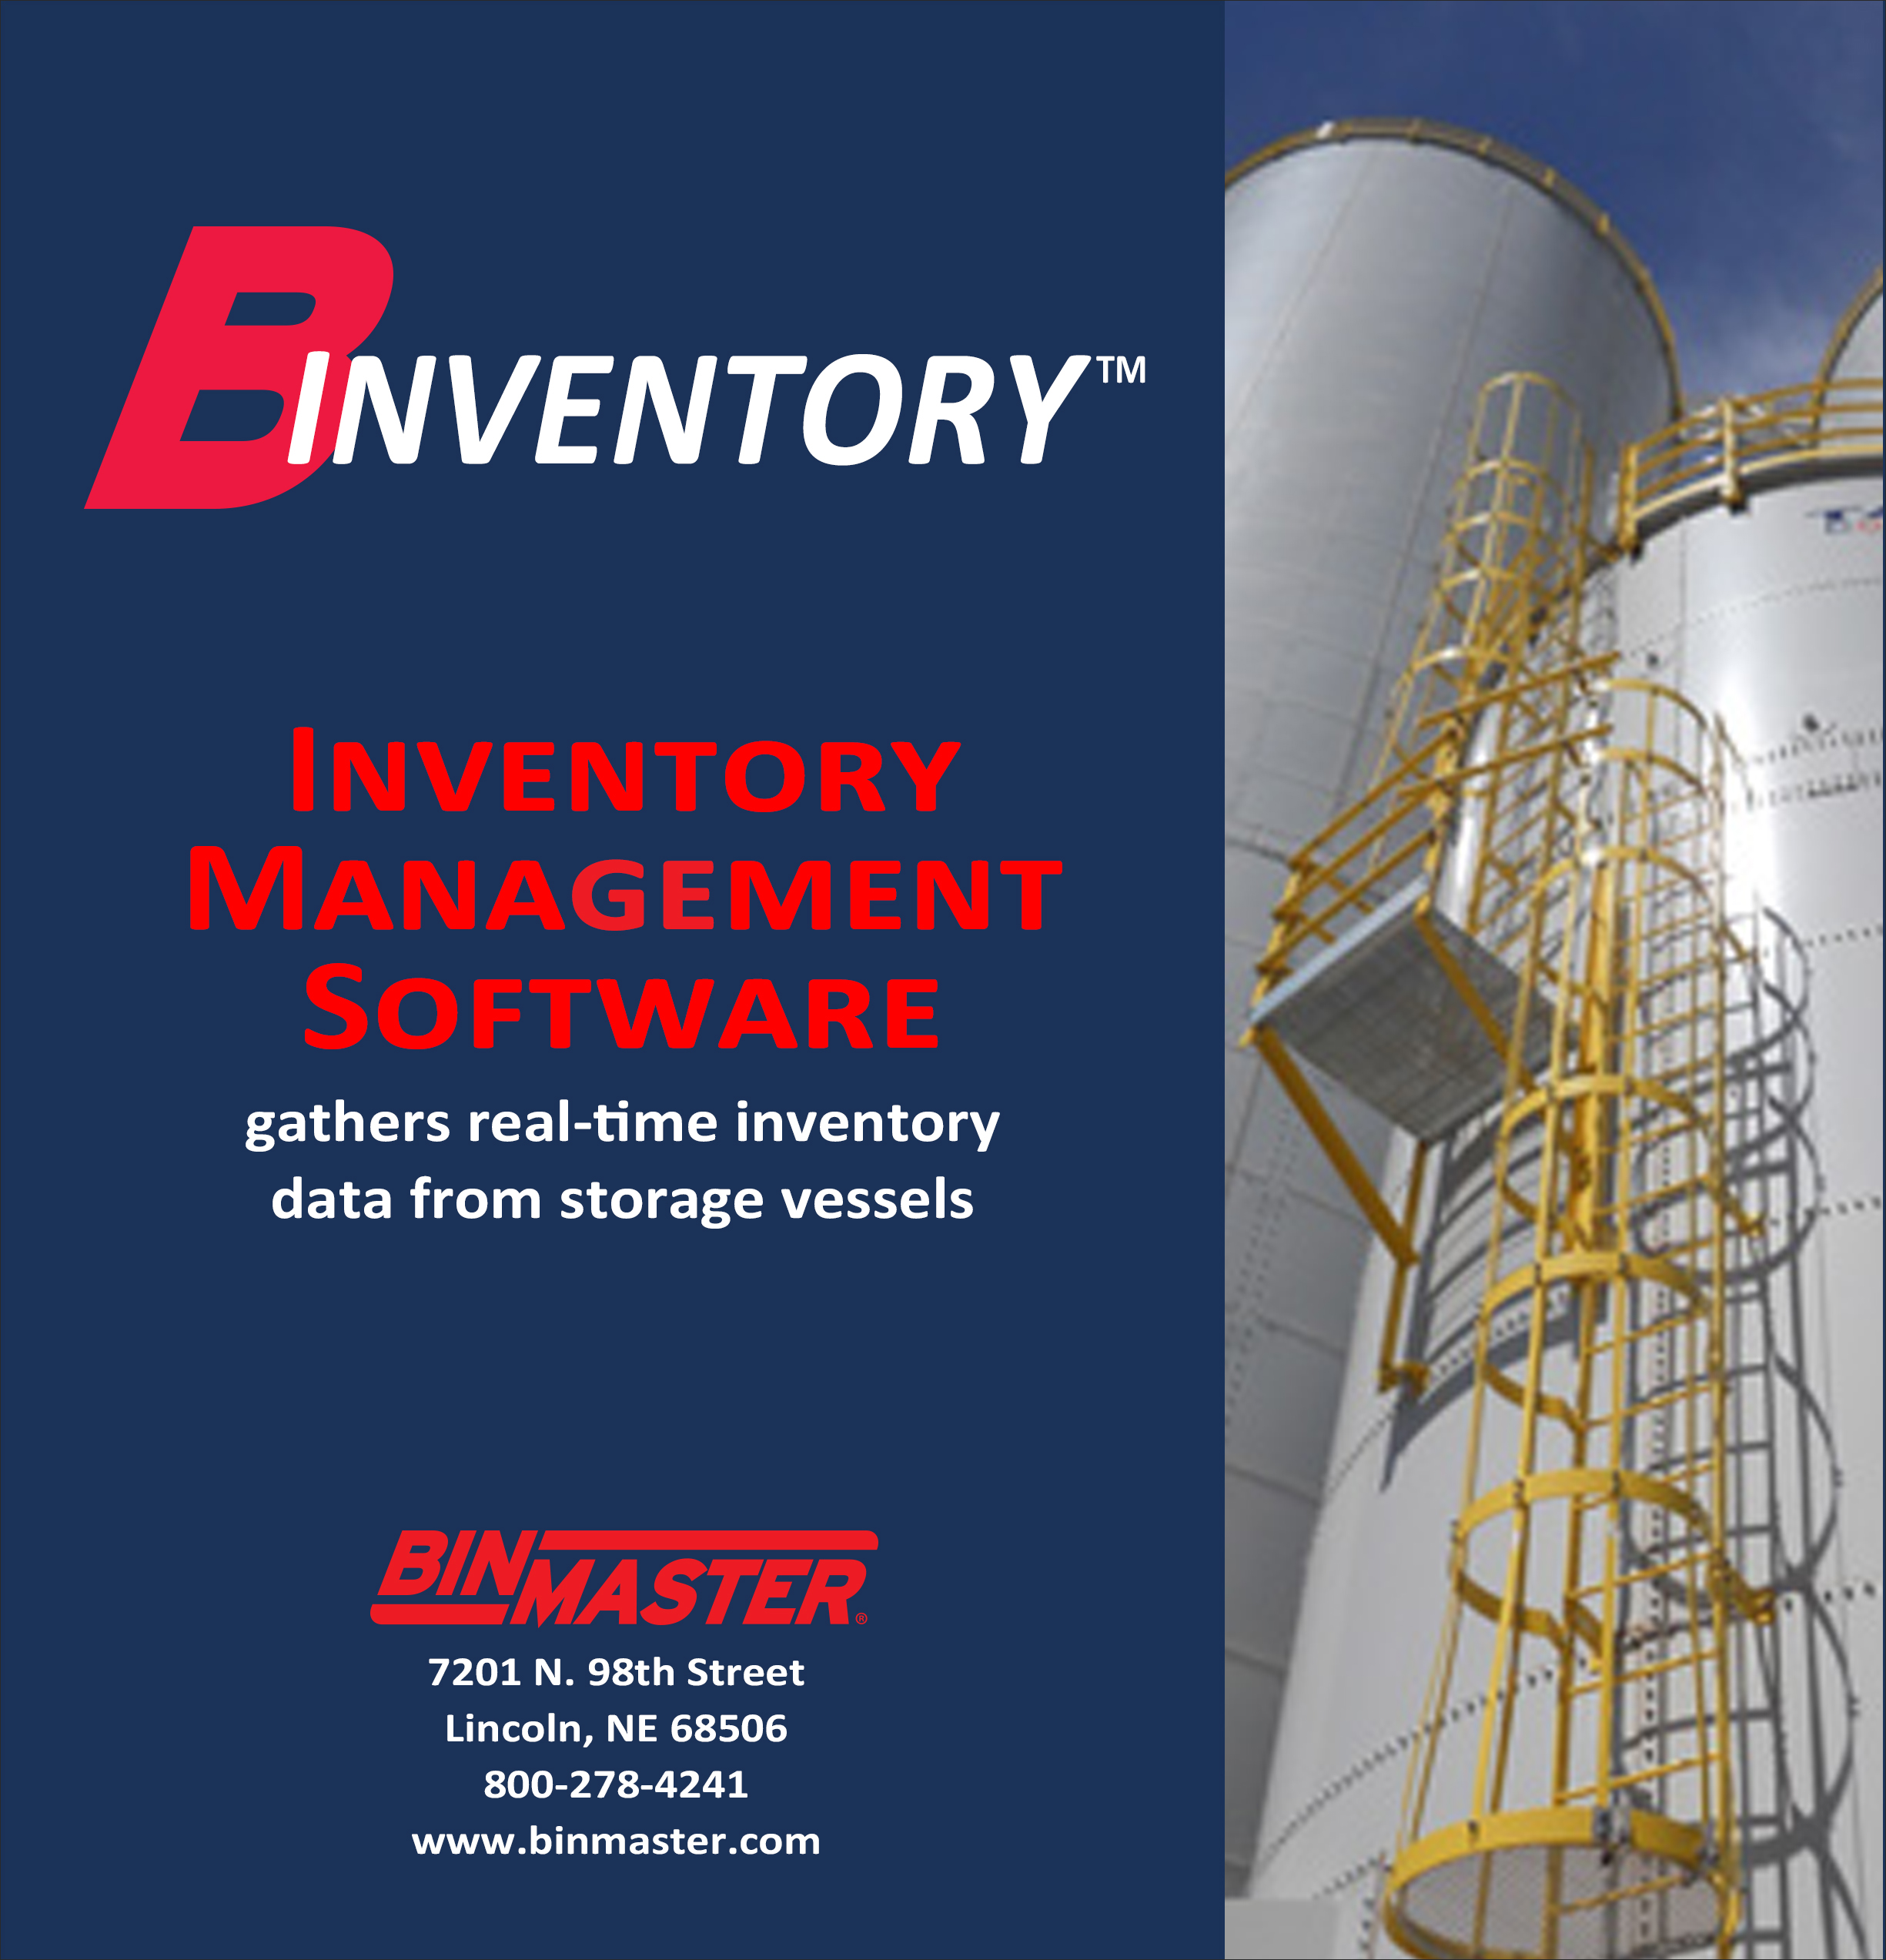 BINVENTORY Inventory Management Software